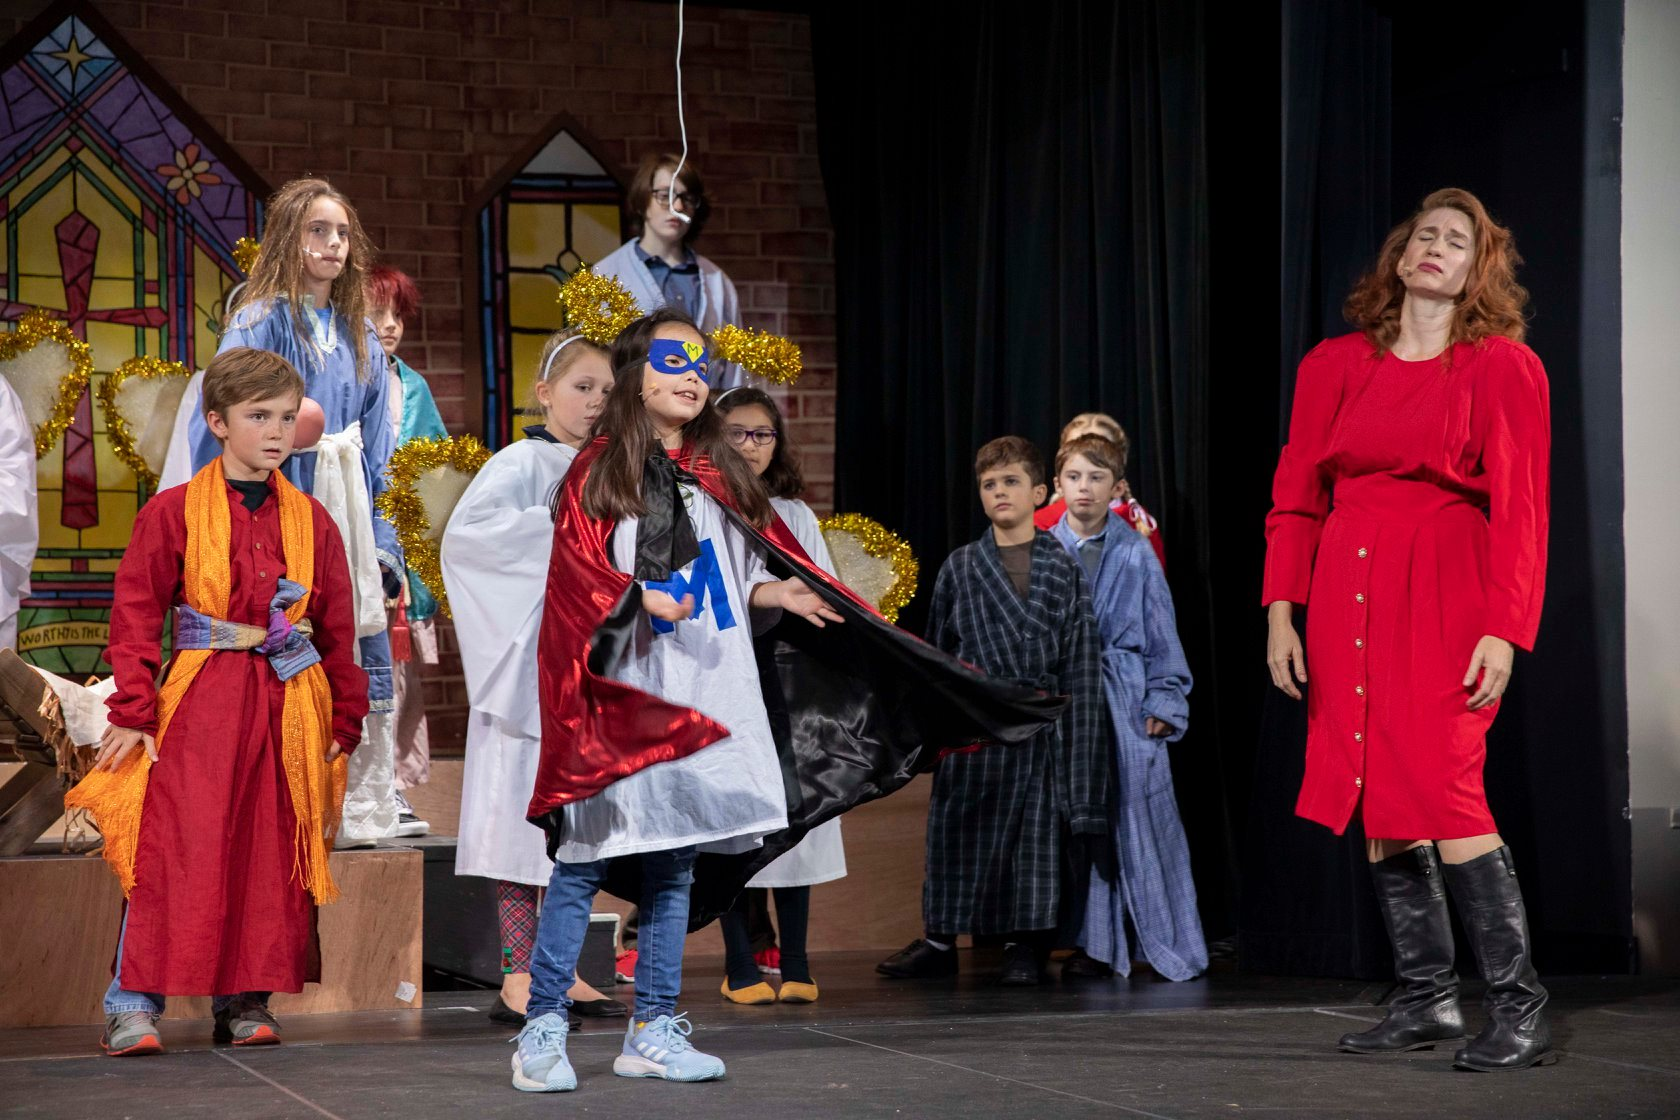 uploads/best-christmas-pageant-ever-lakeway-players-2019/pageant_lakeway_09_.jpg